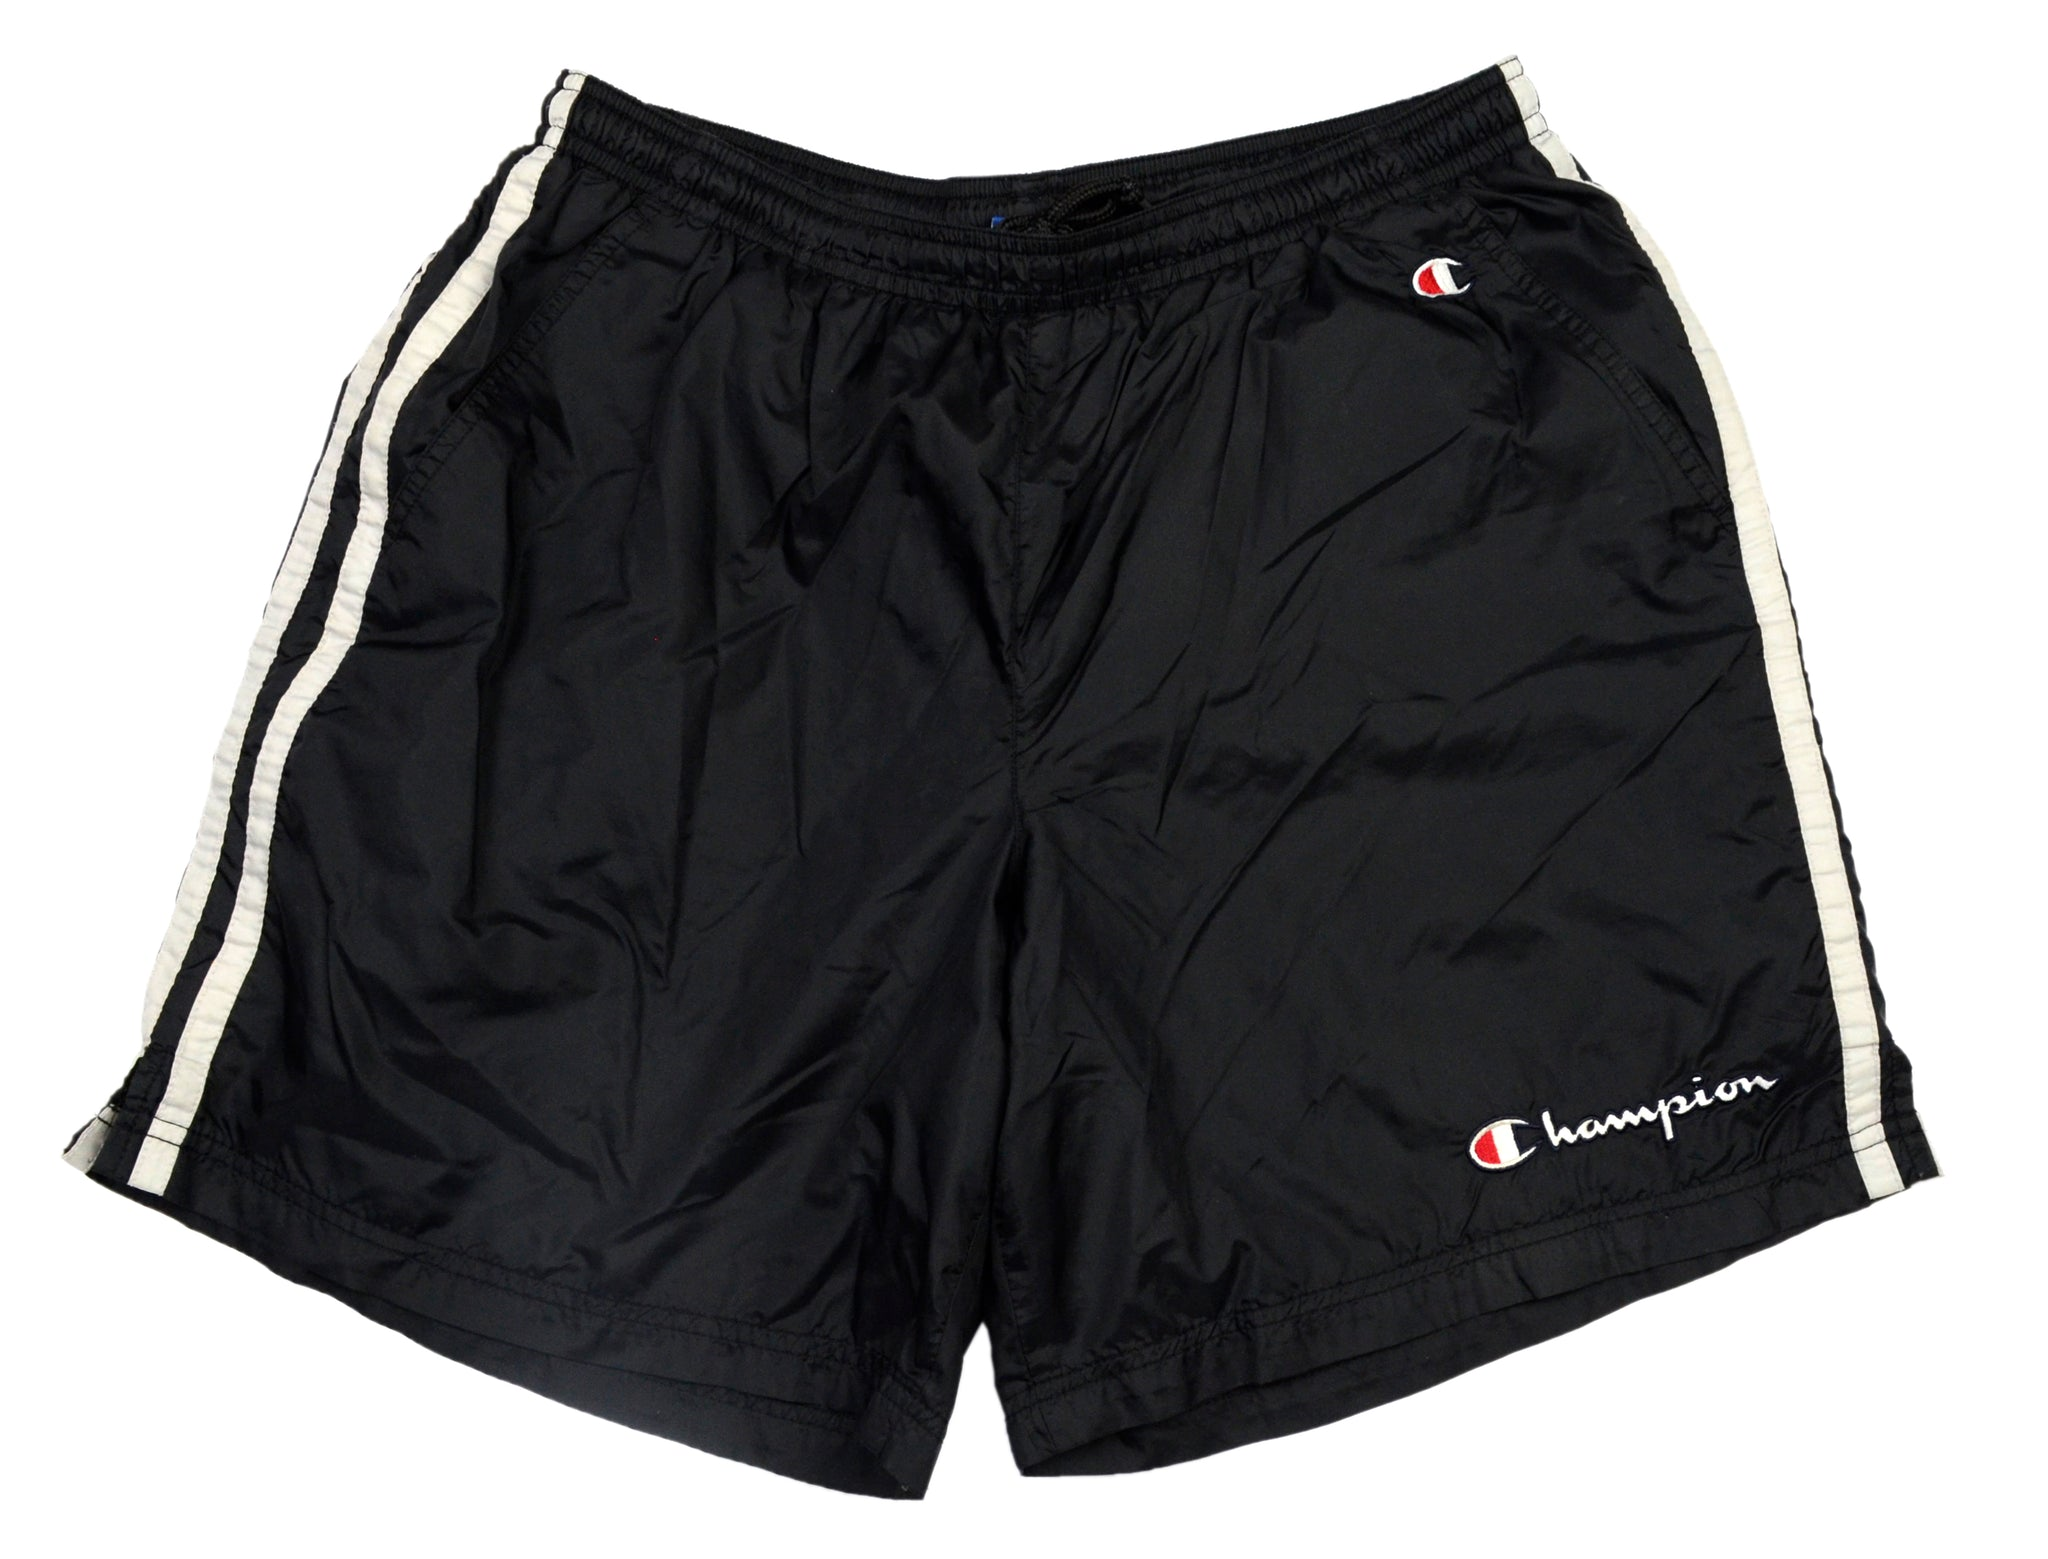 Champion Nylon Shorts